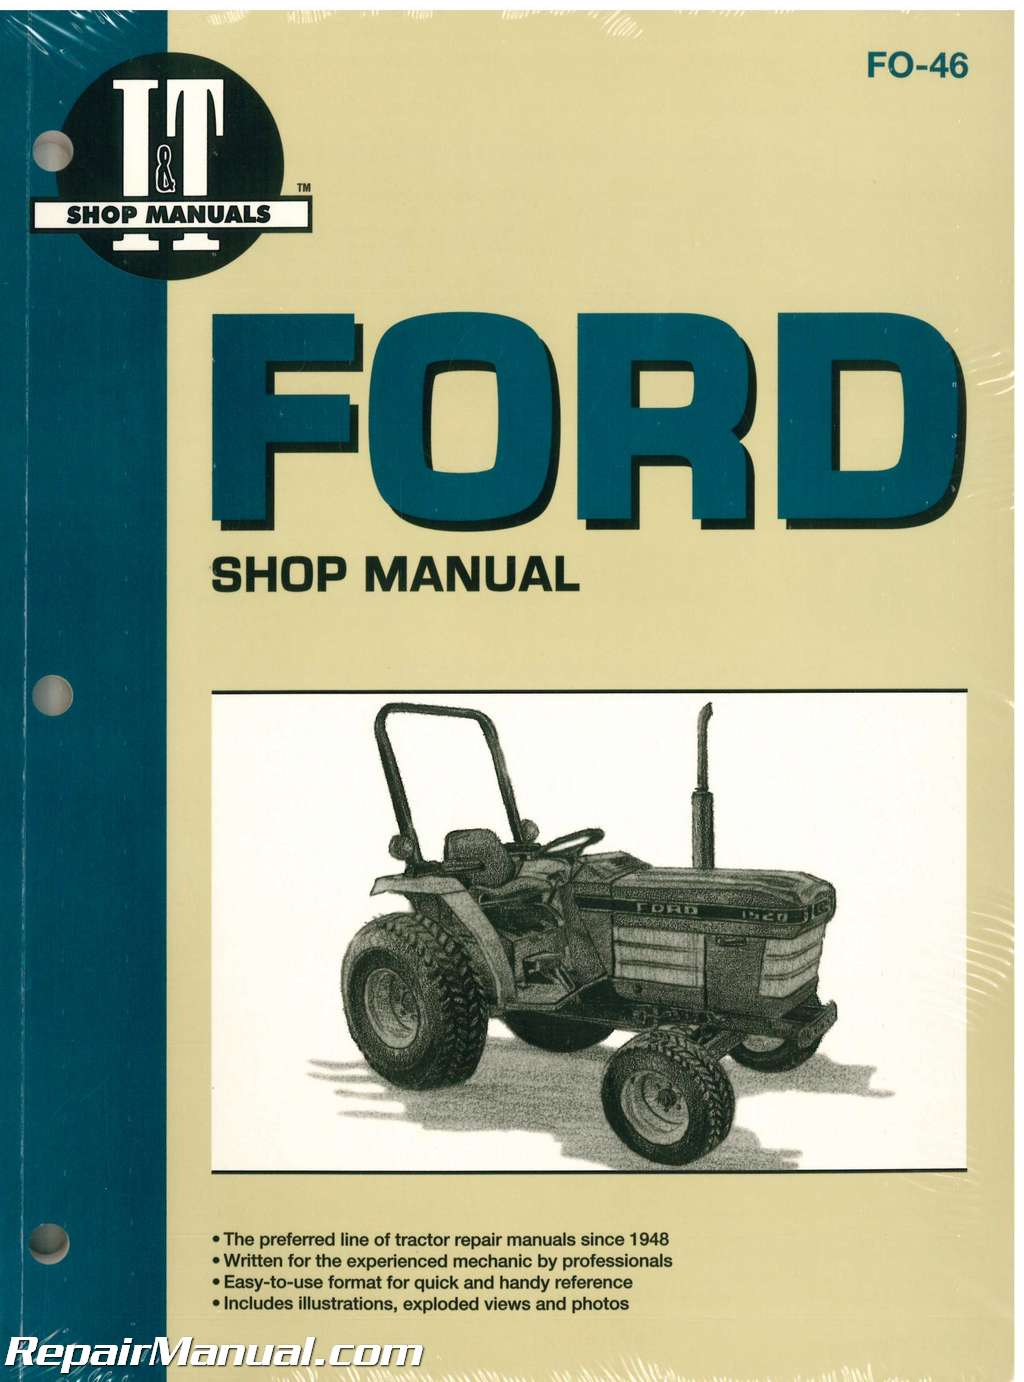 ford new holland 1120 1220 1320 1520 1720 1920 2120 tractor manual rh repairmanual com ford 1720 tractor parts manual 1720 ford tractor manual pdf